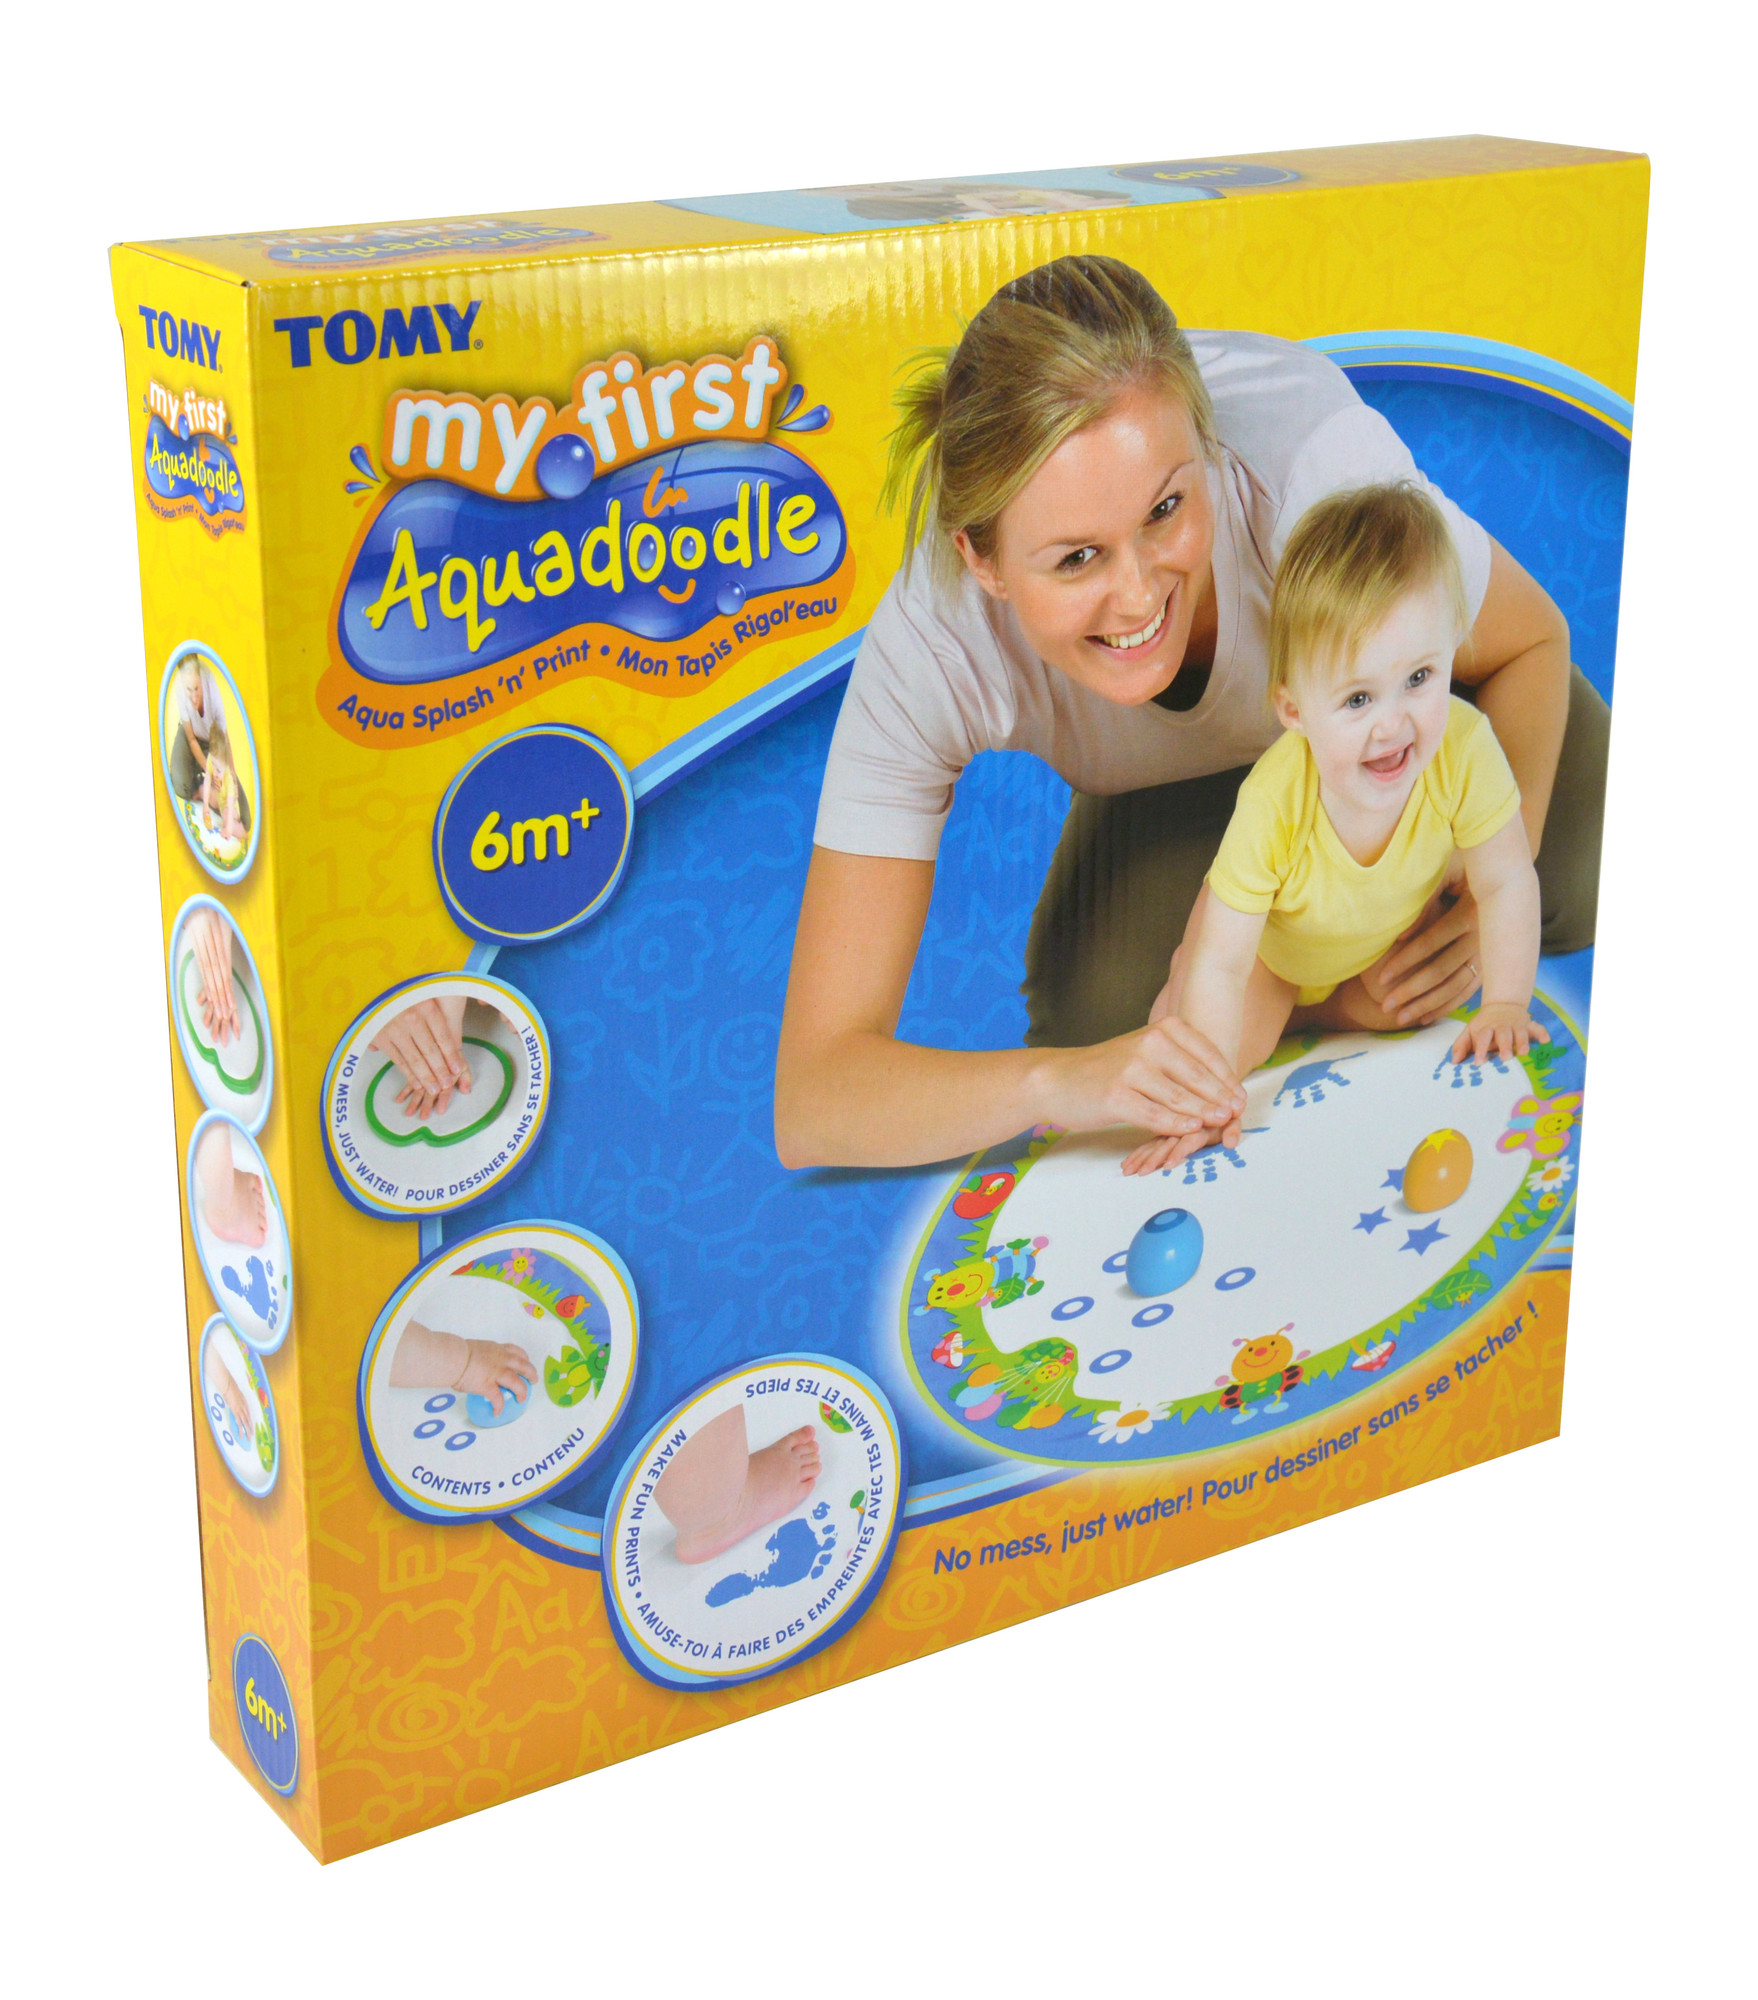 in zoo folks toddler hop play baby mat nyc playing products reversible skip on playmat doubleplay little mats